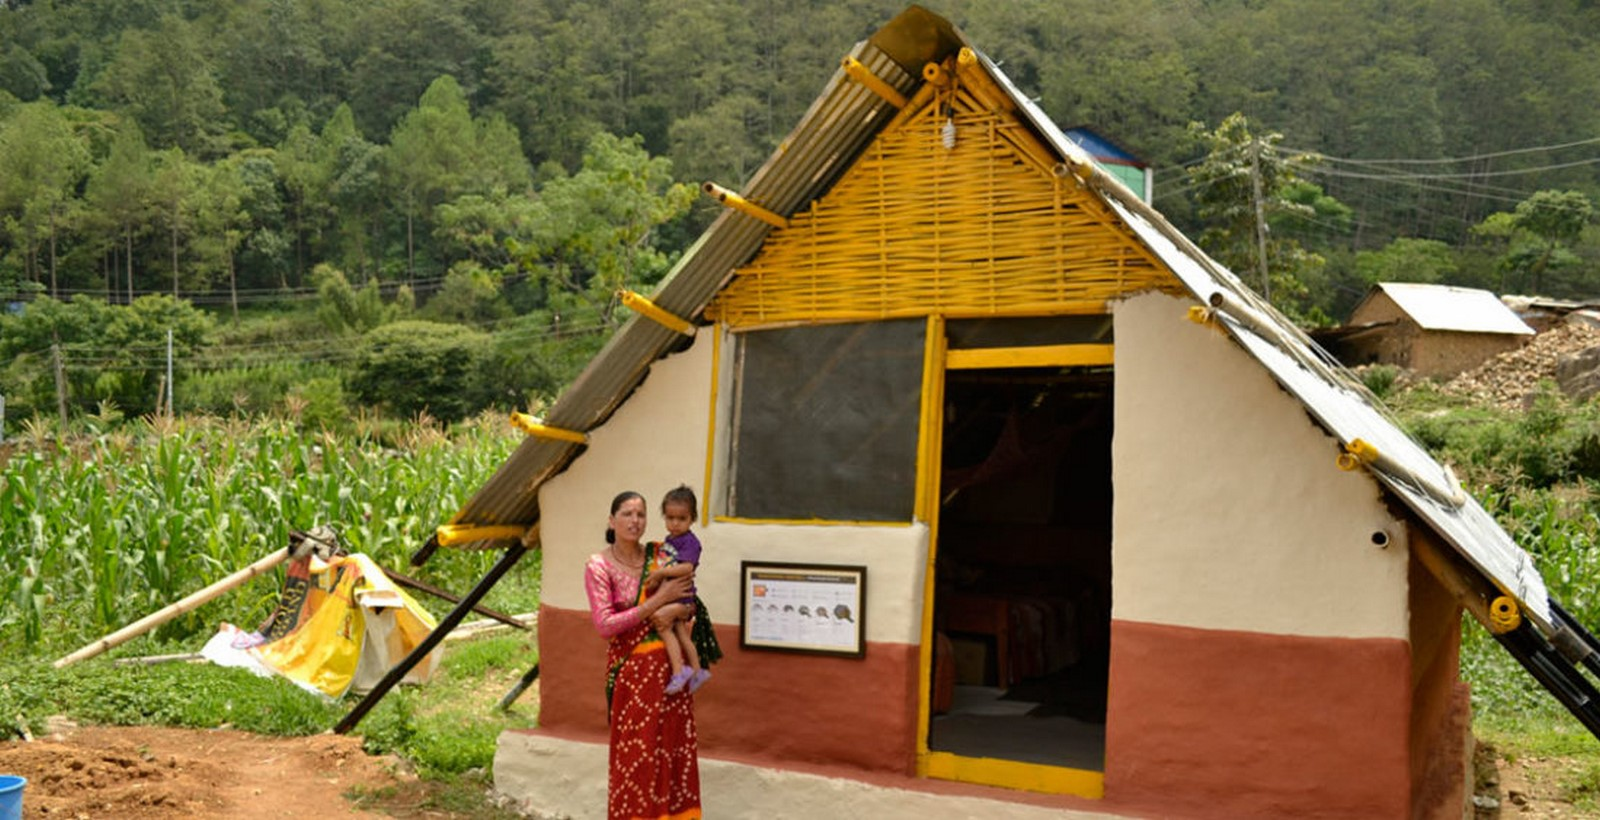 A review of Temporary architecture for disaster management in rural areas - Sheet2